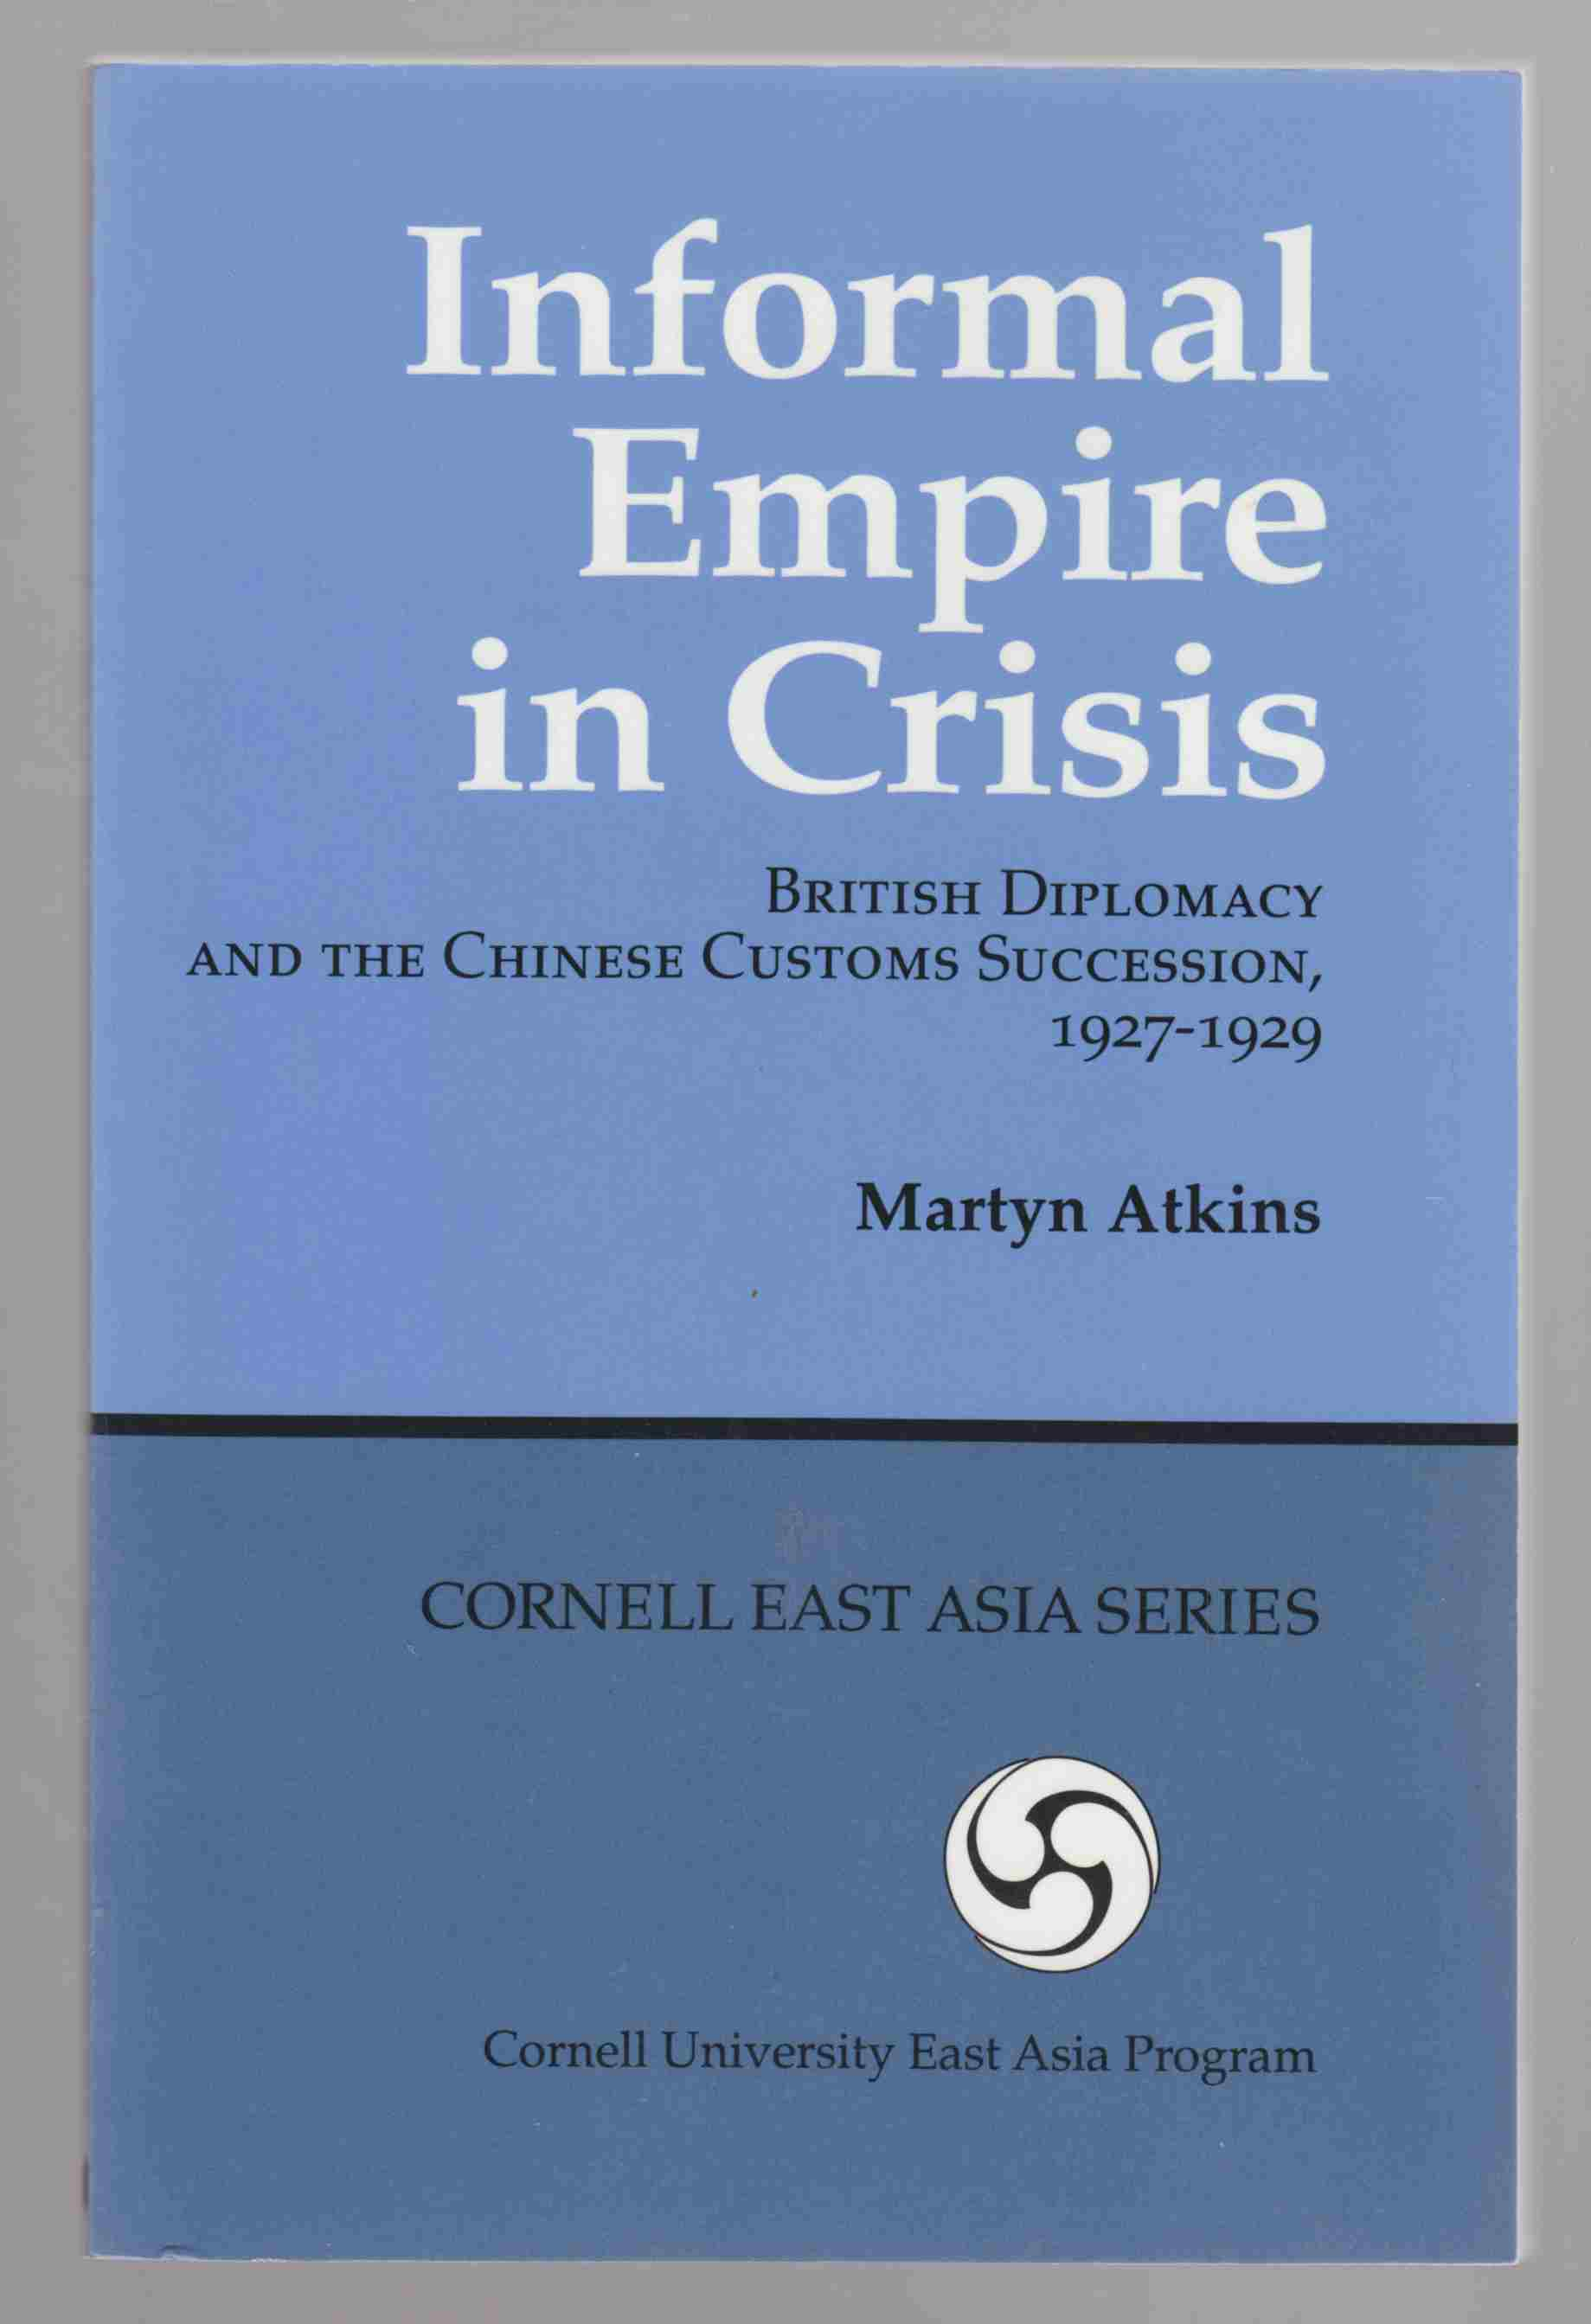 Image for Informal Empire in Crisis British Diplomacy and the Chinese Customs Succession 1927-1929